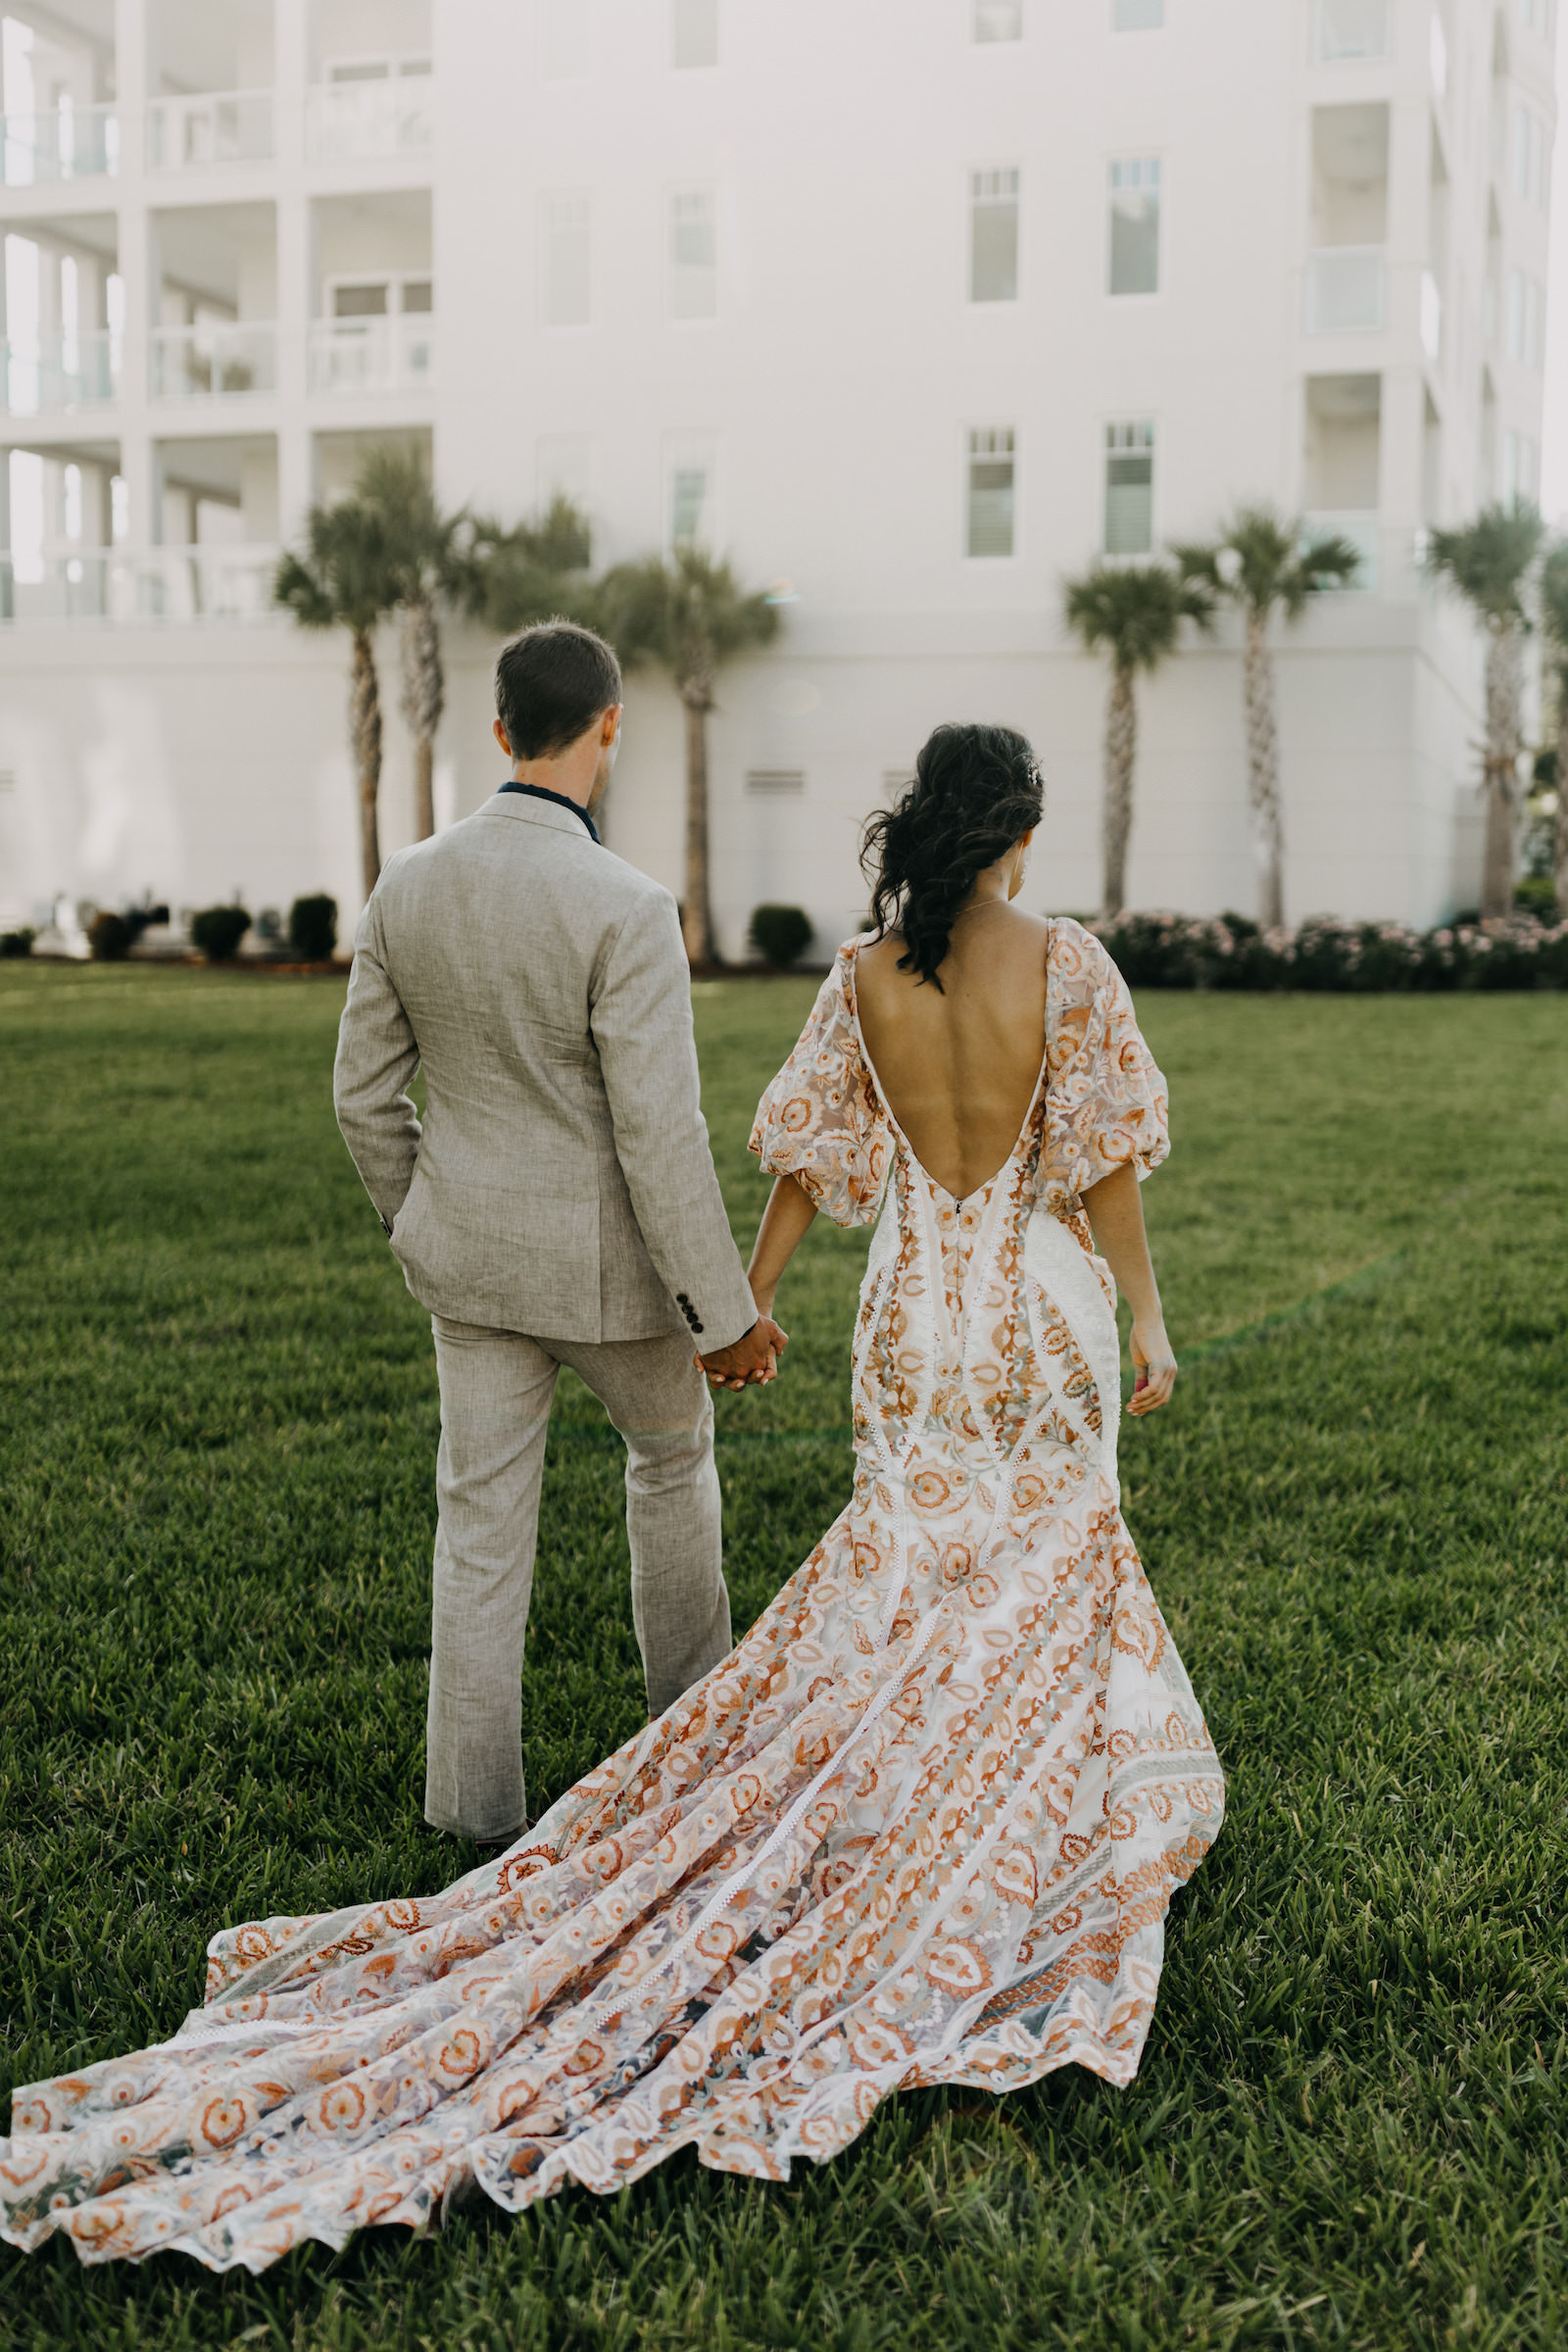 Outdoor Bride and Groom Portrait   Boho Gold Bronze Embroidered Overlay Wedding Dress Bridal Gown with Illusion Sleeves and Train   Groom in Grey Khaki Linen Suit   Amber McWhorter Photography